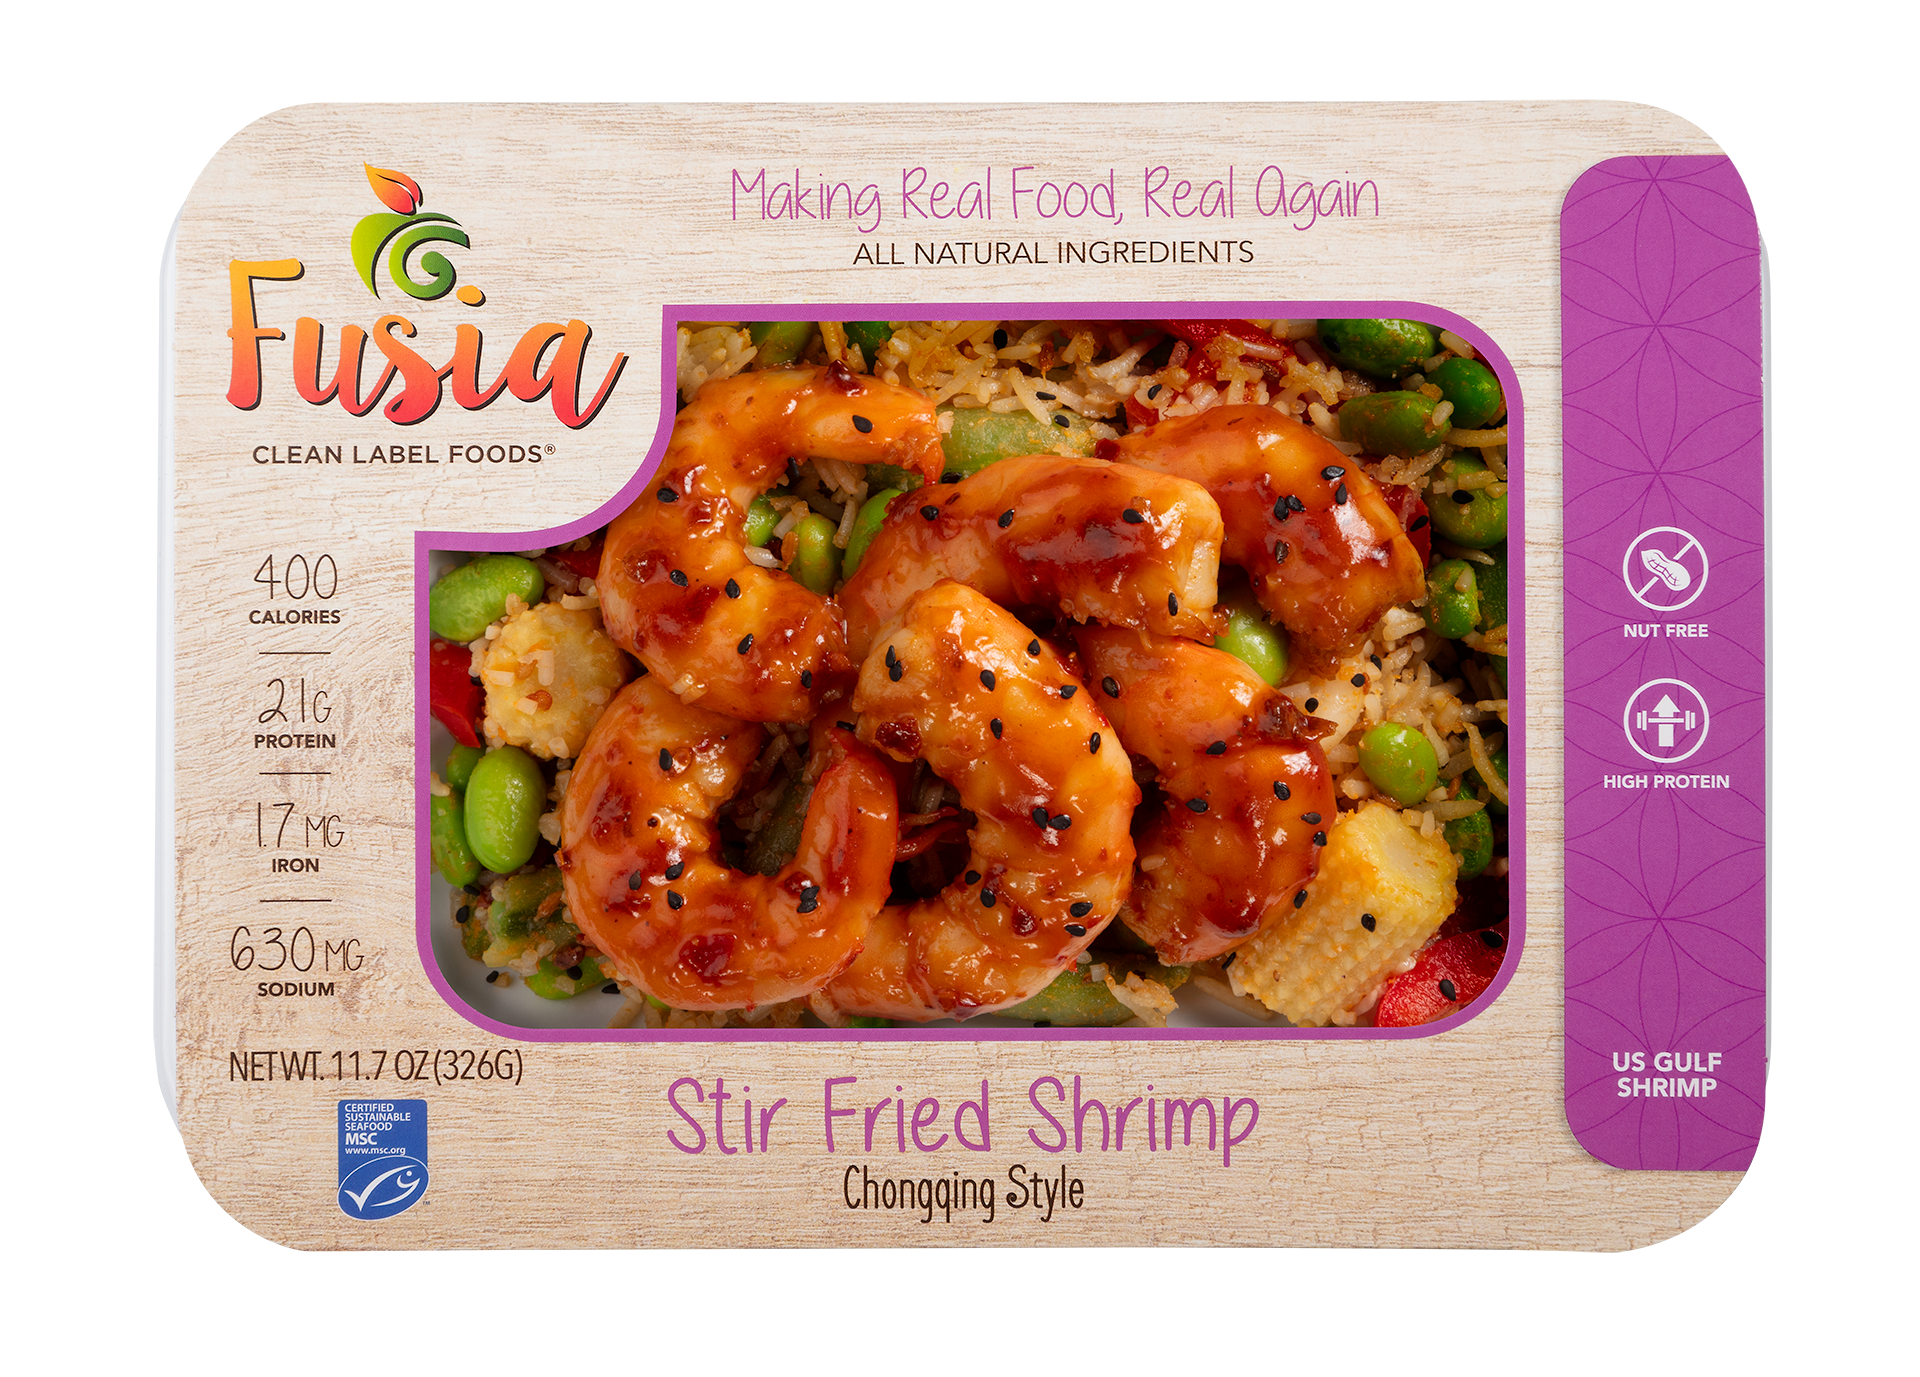 Stir Fry Shrimp